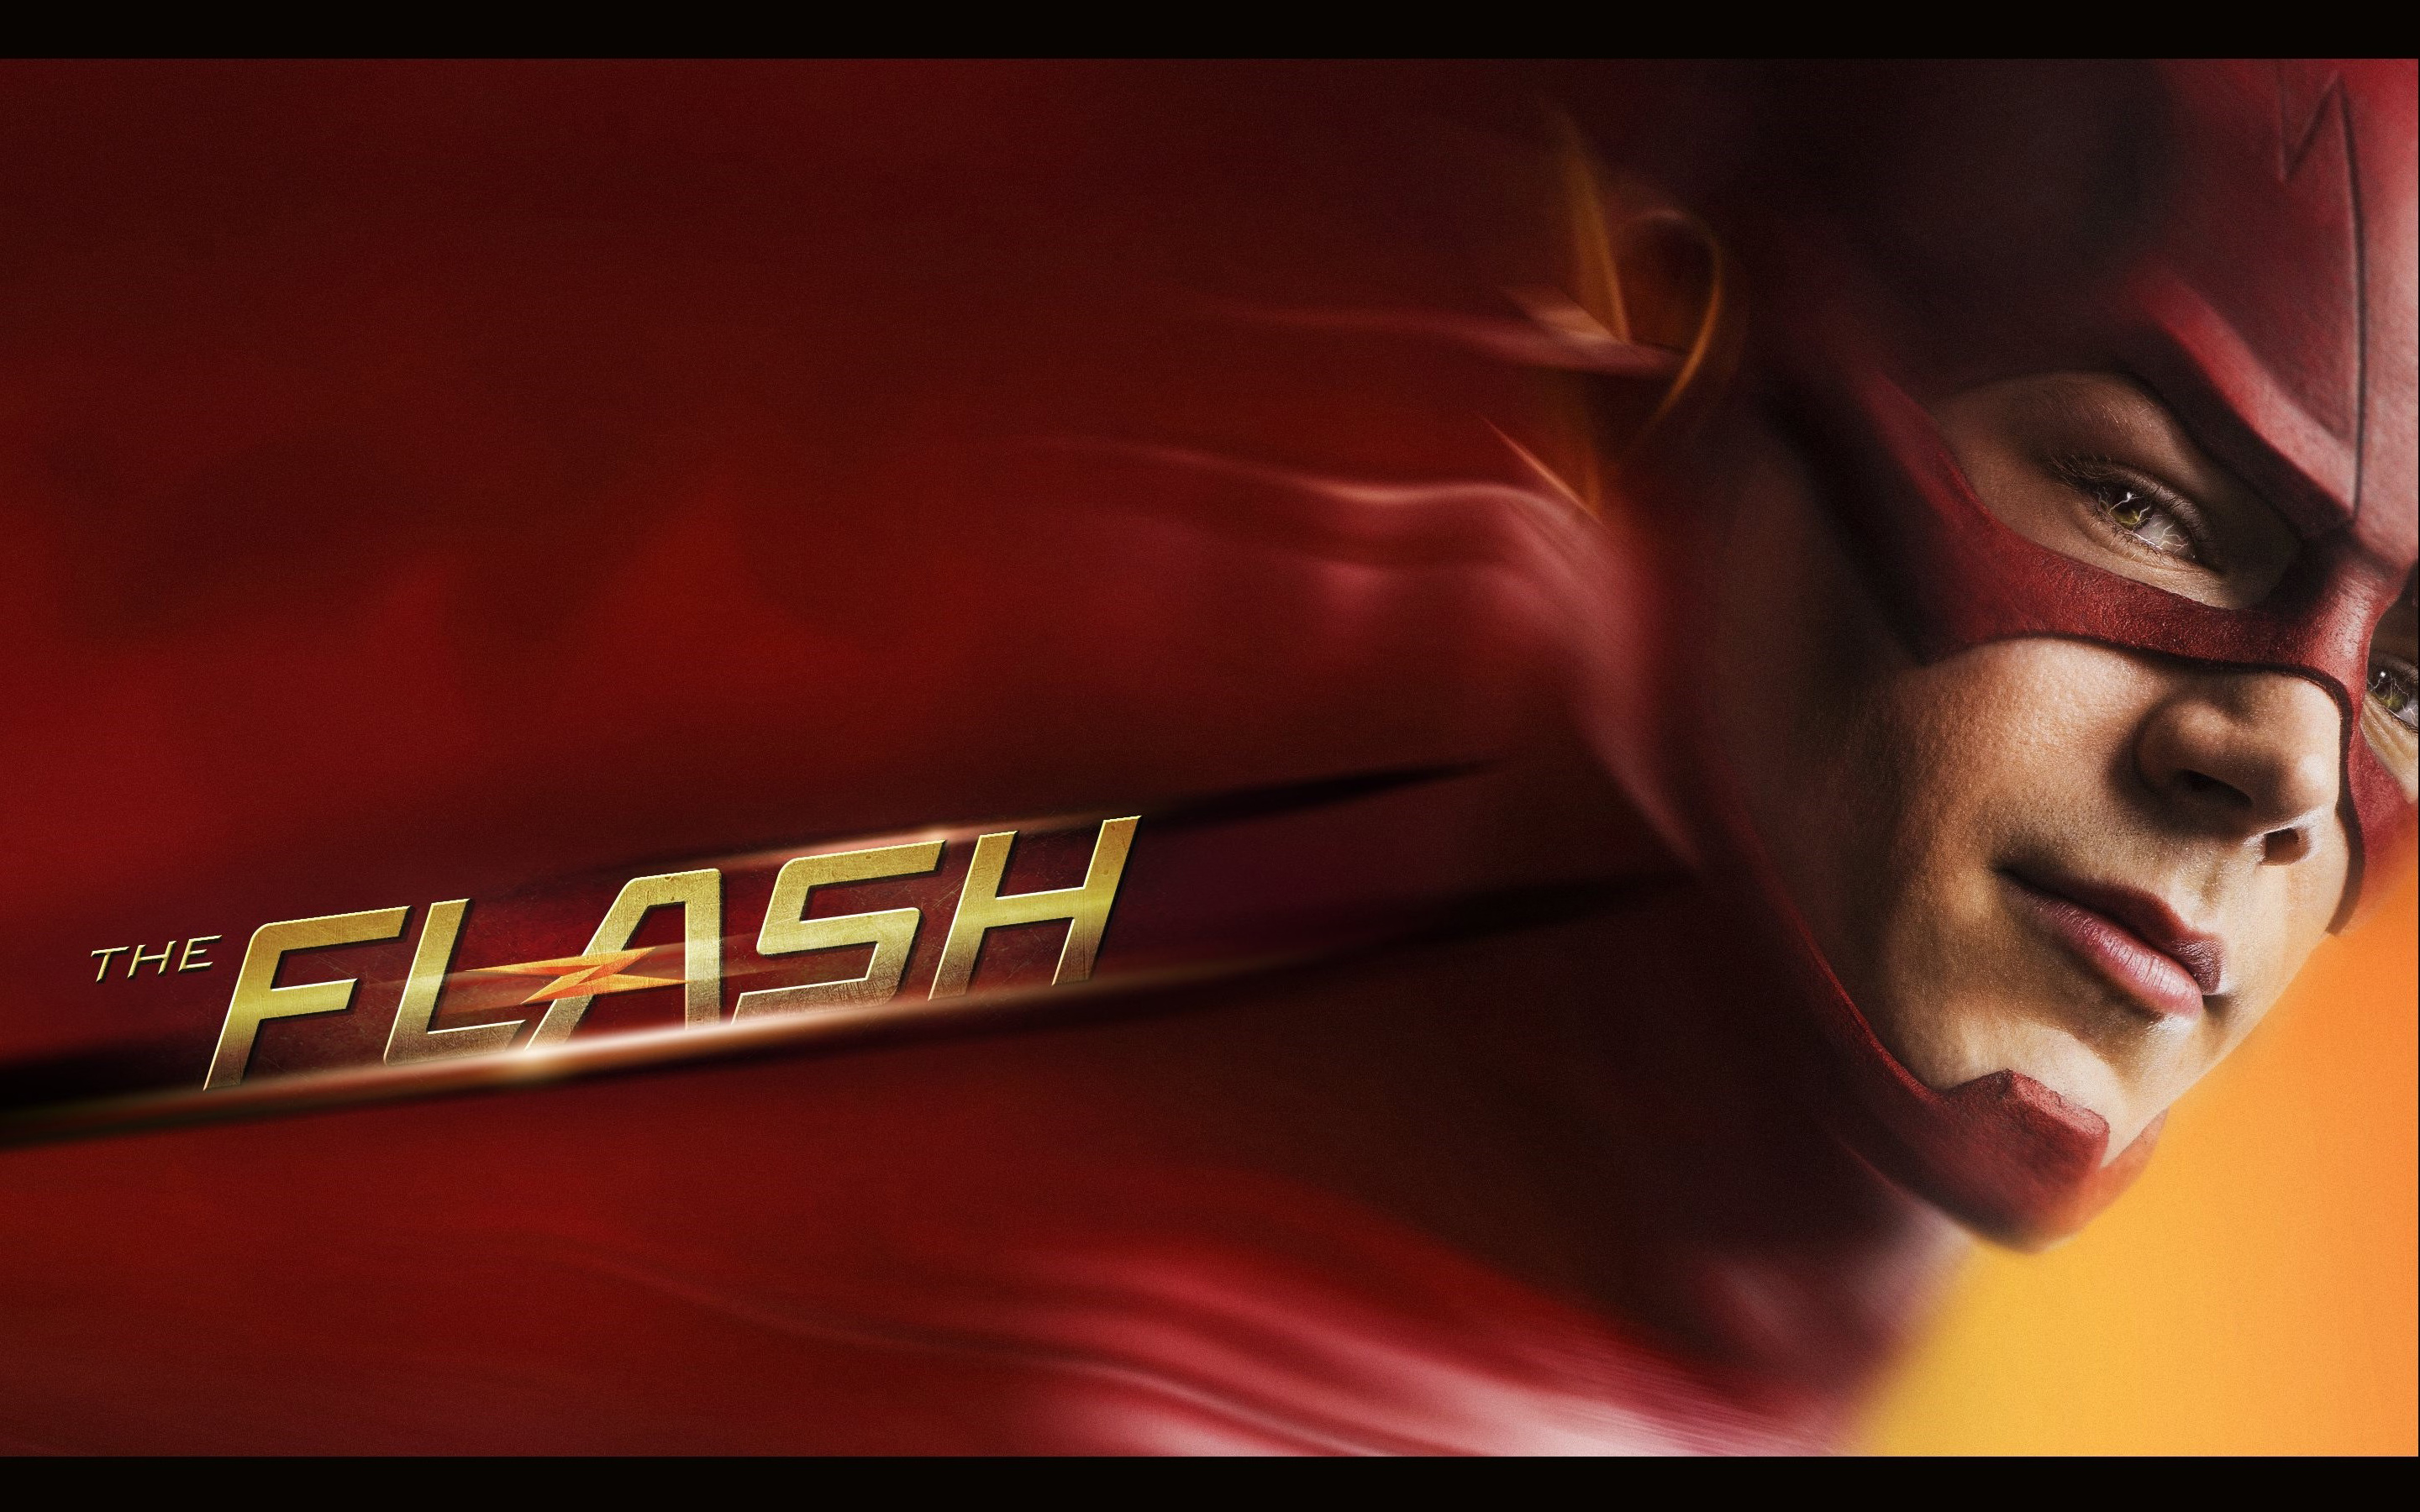 The Flash TV Series 2340.19 Kb